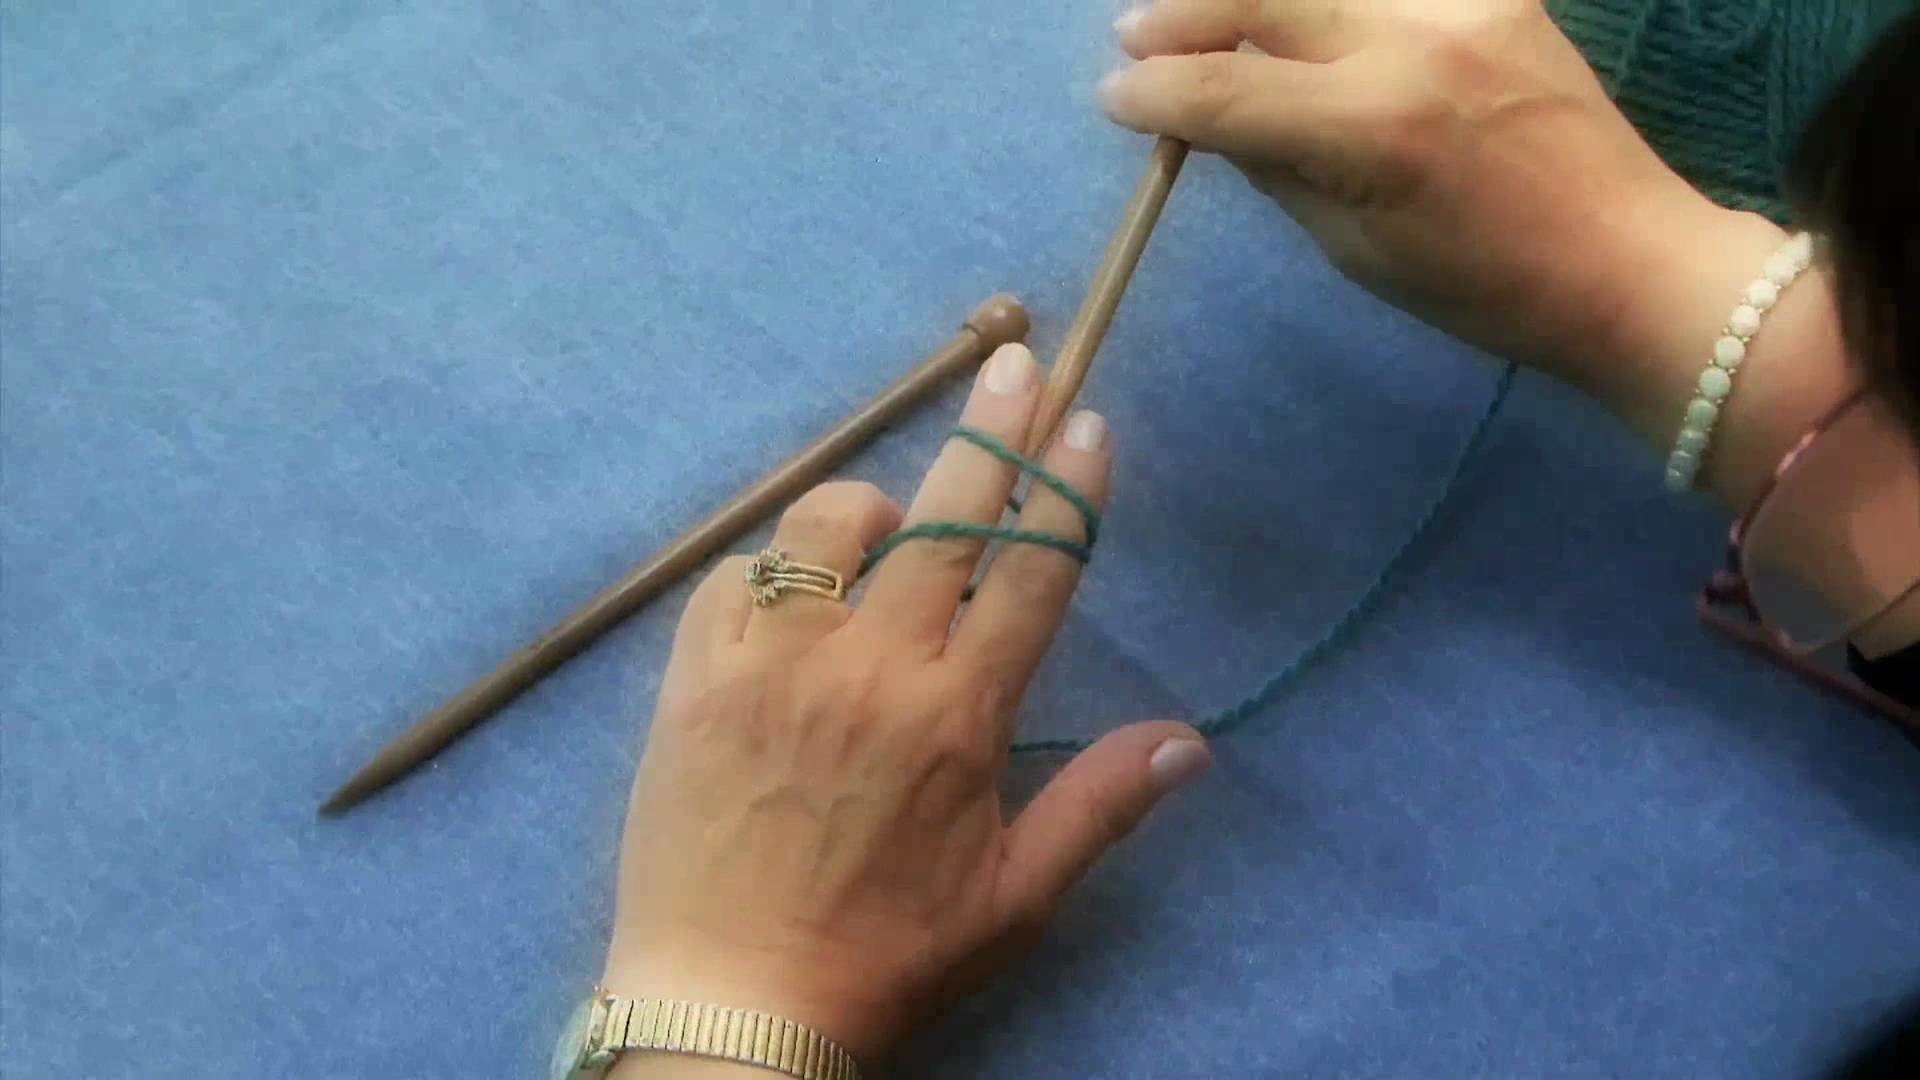 How To Knit Part 1 of 3 HD Quality